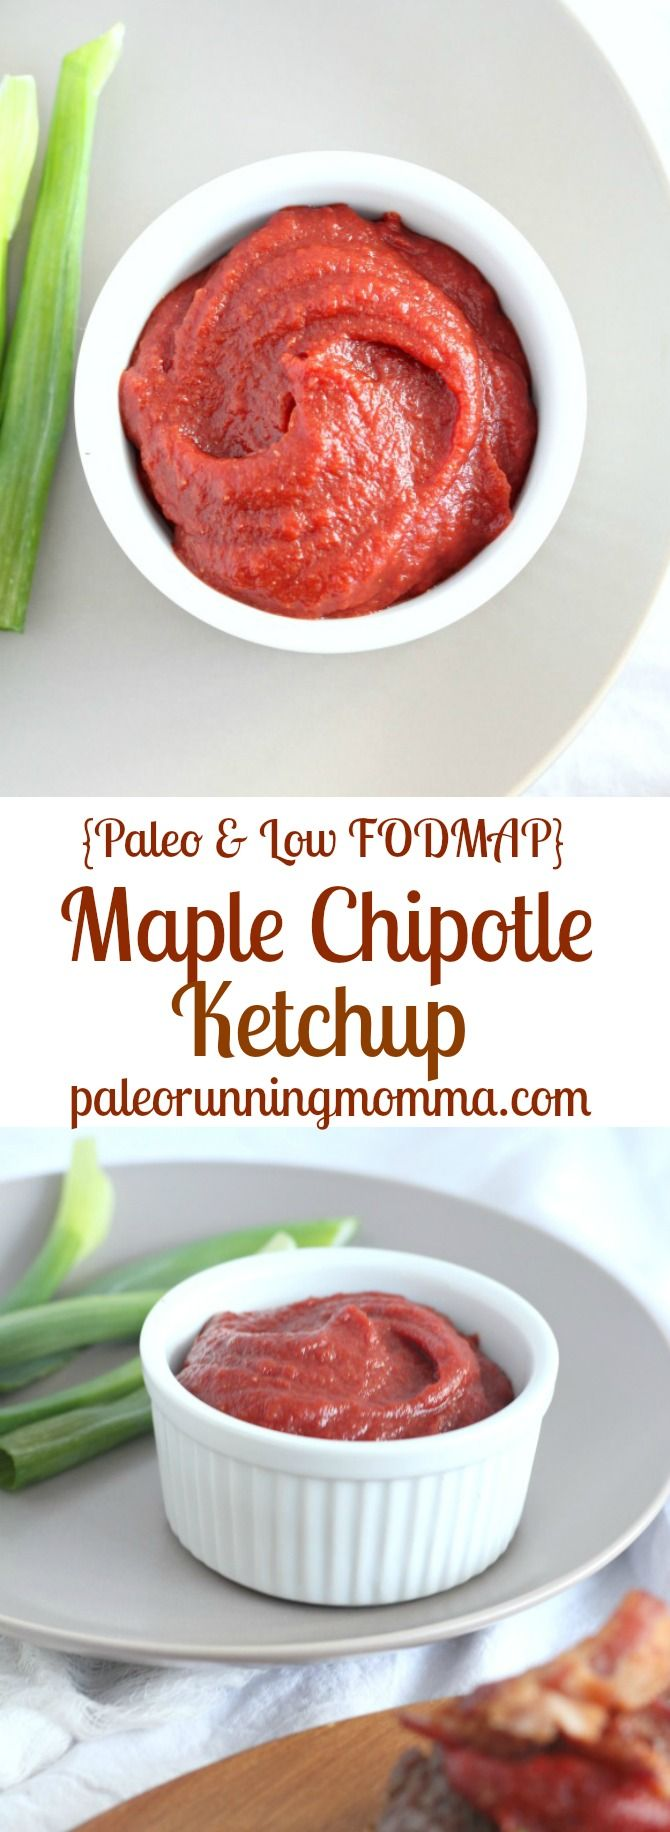 Maple Chipotle Ketchup Paleo Low Fodmap Recipe Low Fodmap Recipes Fodmap Recipes Paleo Condiments